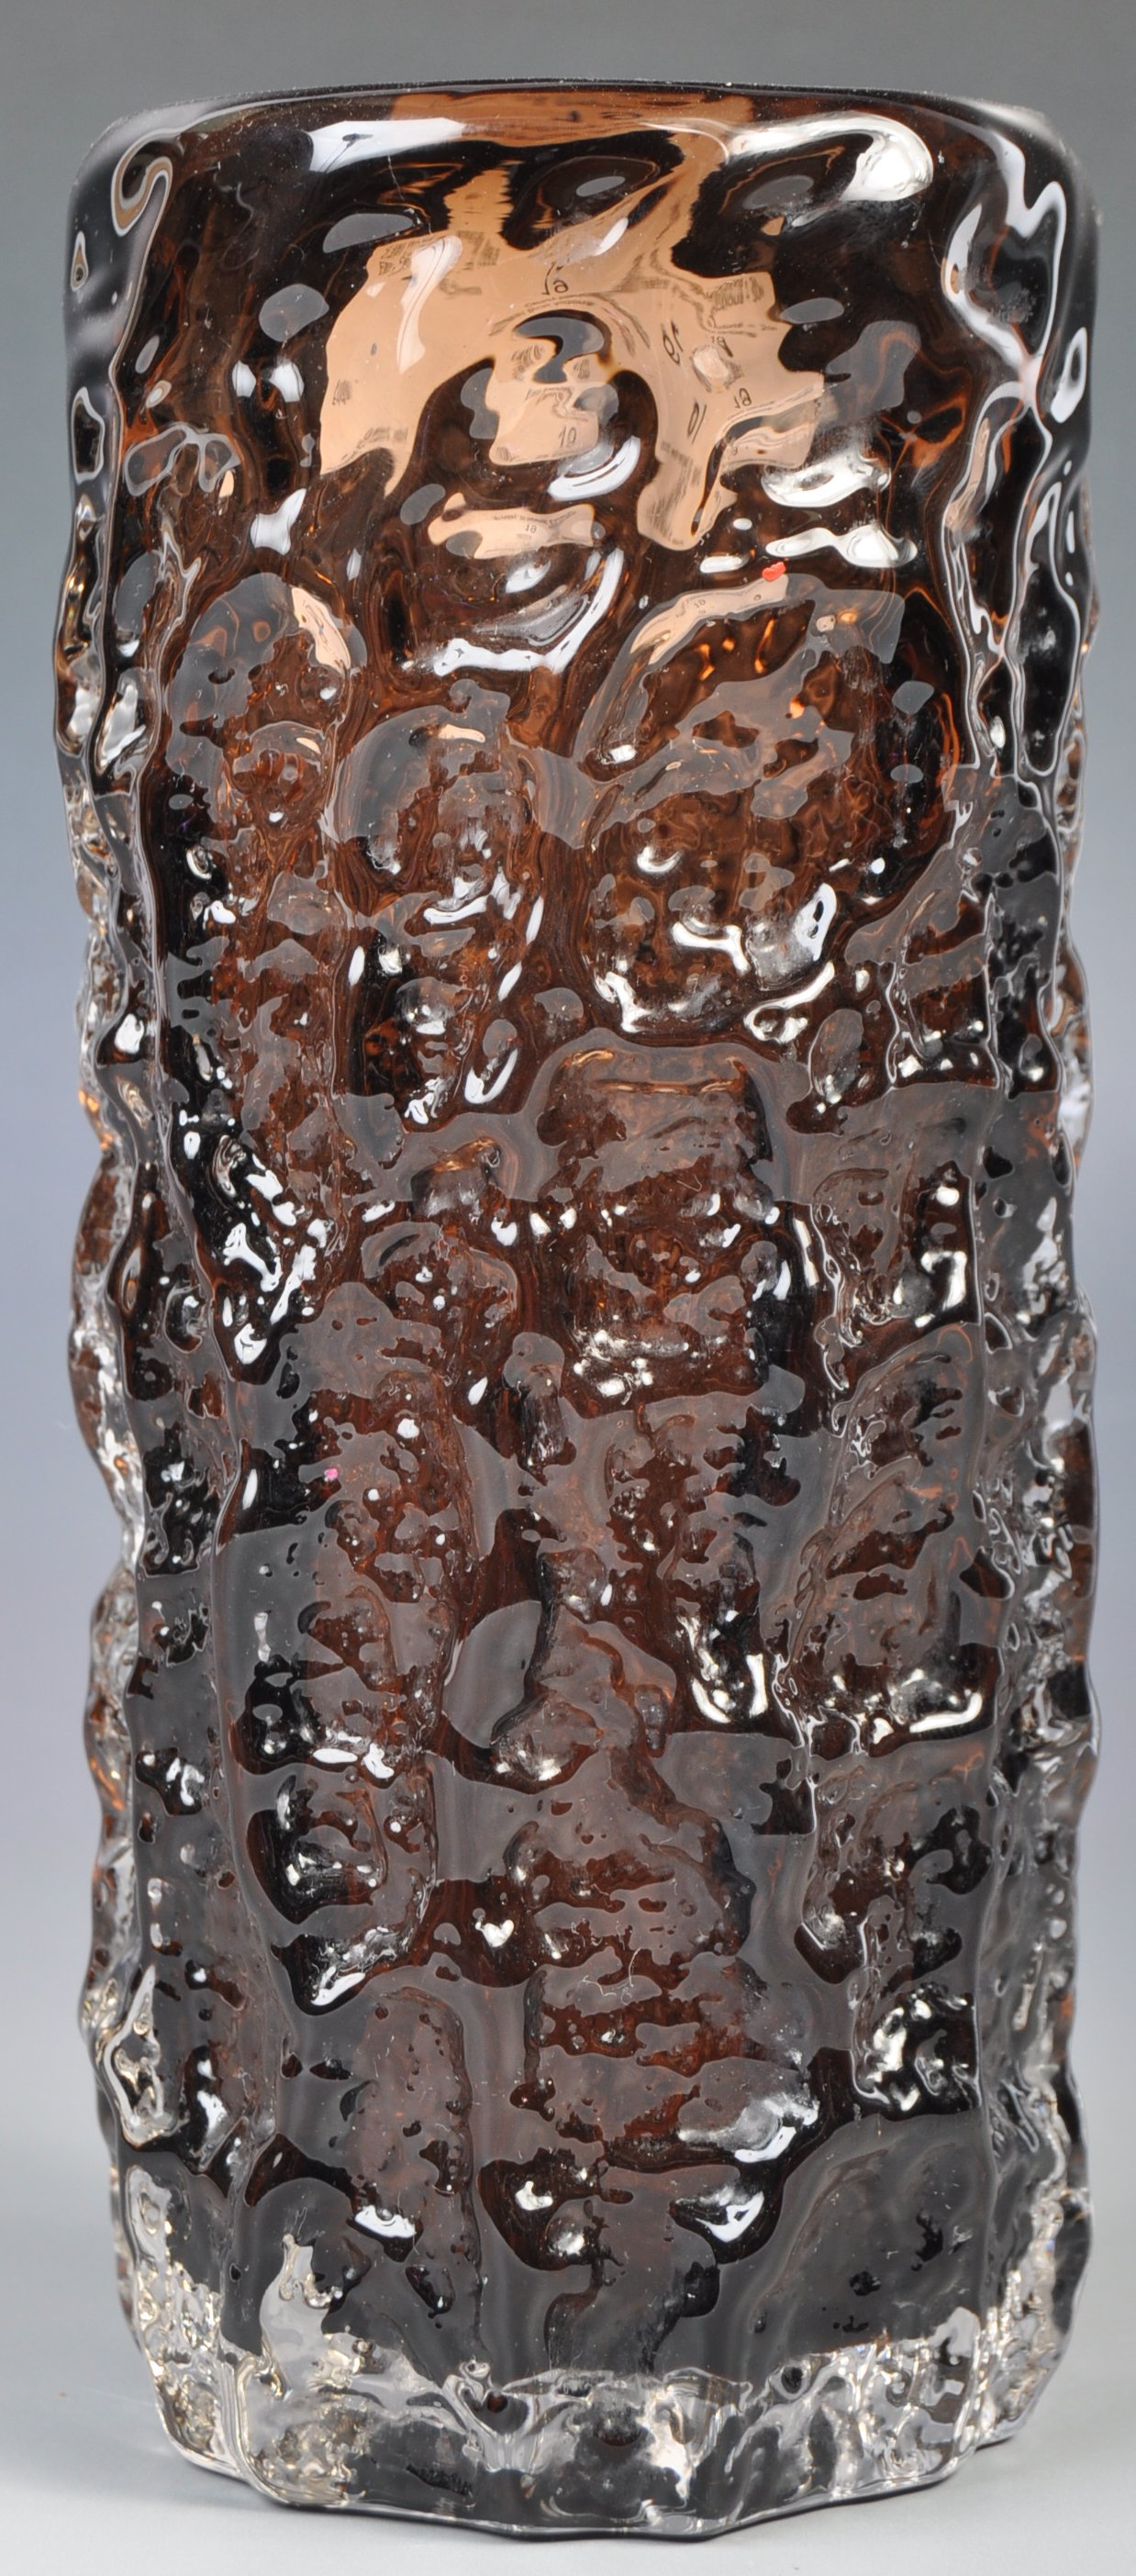 Lot 19 - WHITEFRIARS TEXTURED BARK EFFECT VASE MODEL 9690